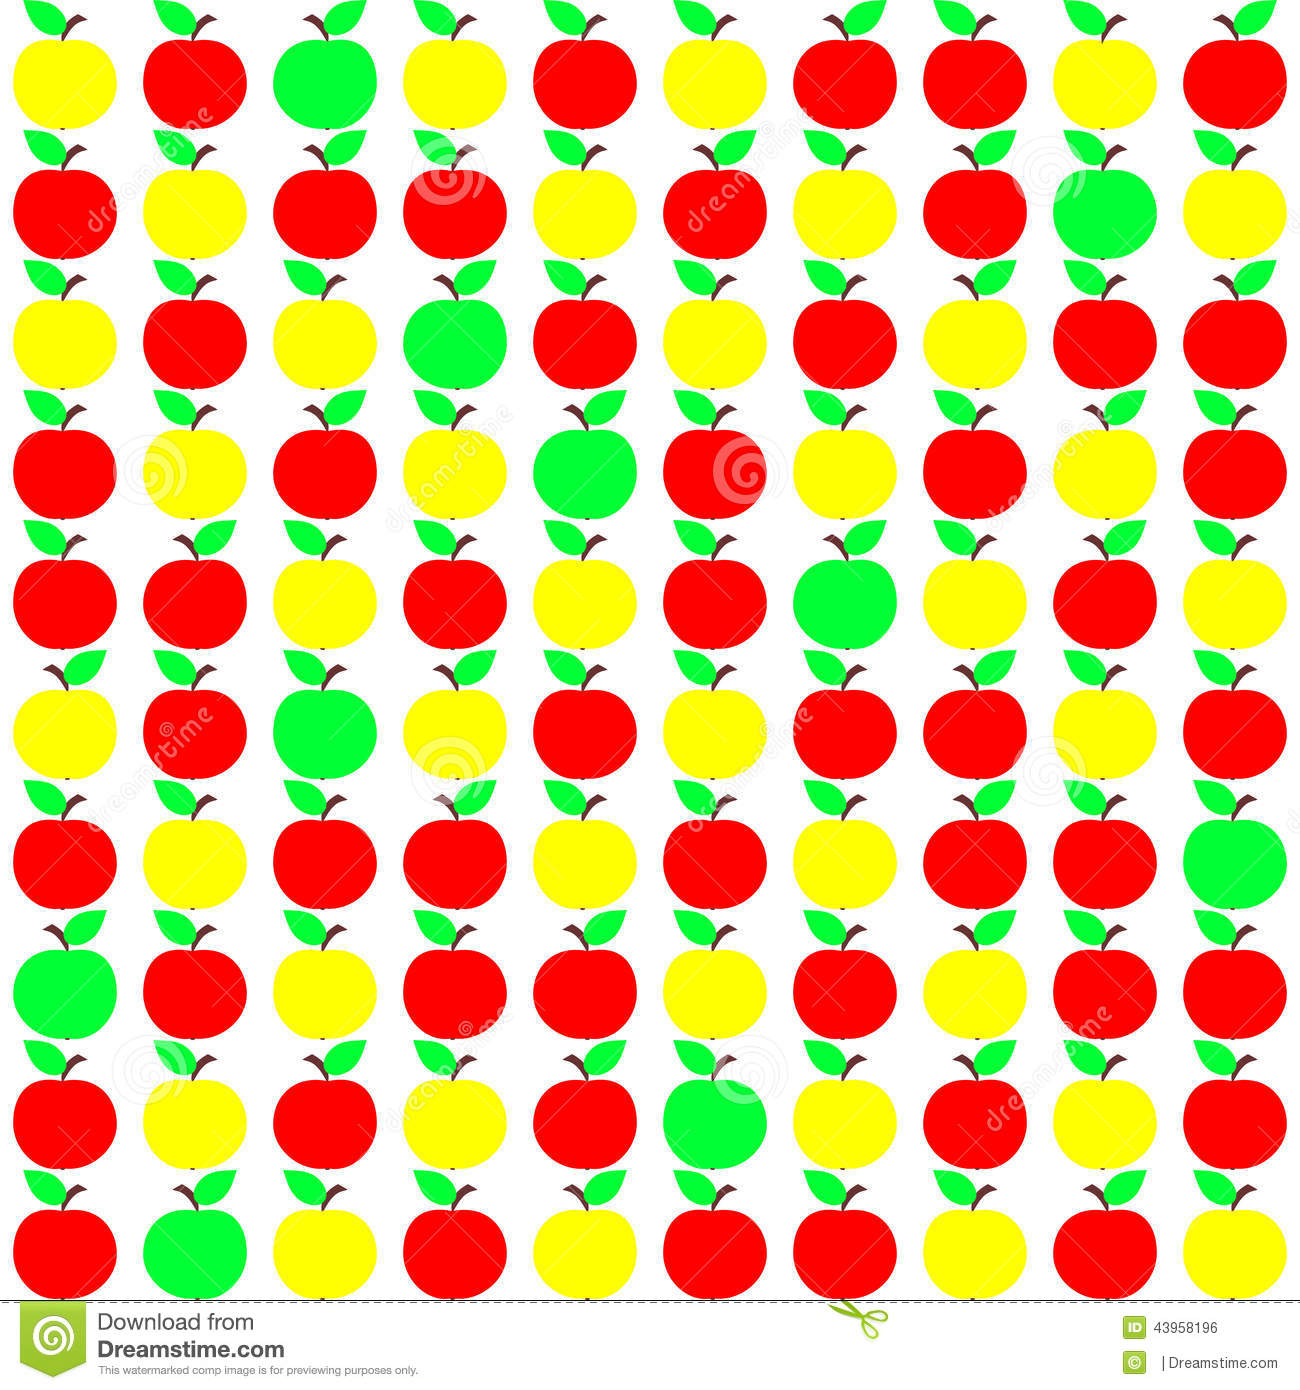 Abstract Seamless Pattern In Yellow Red And Green Colors